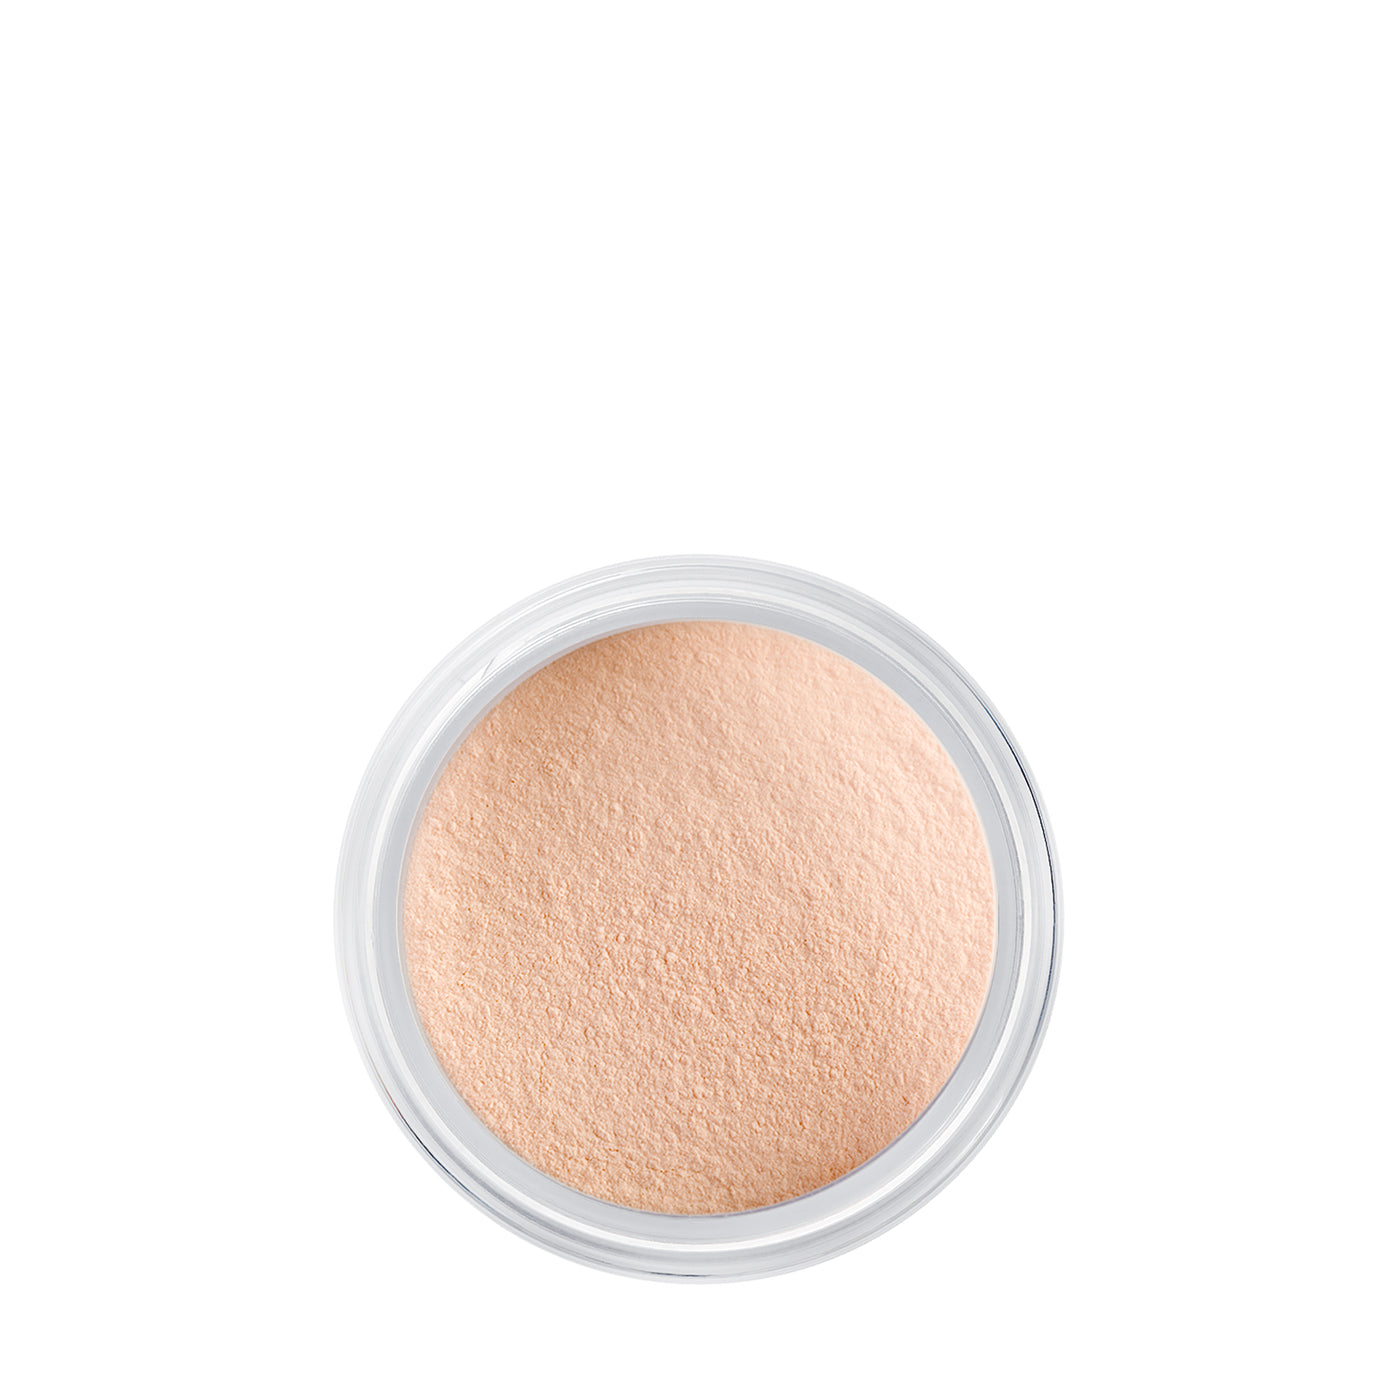 Manasi7 Silk Glow Powder